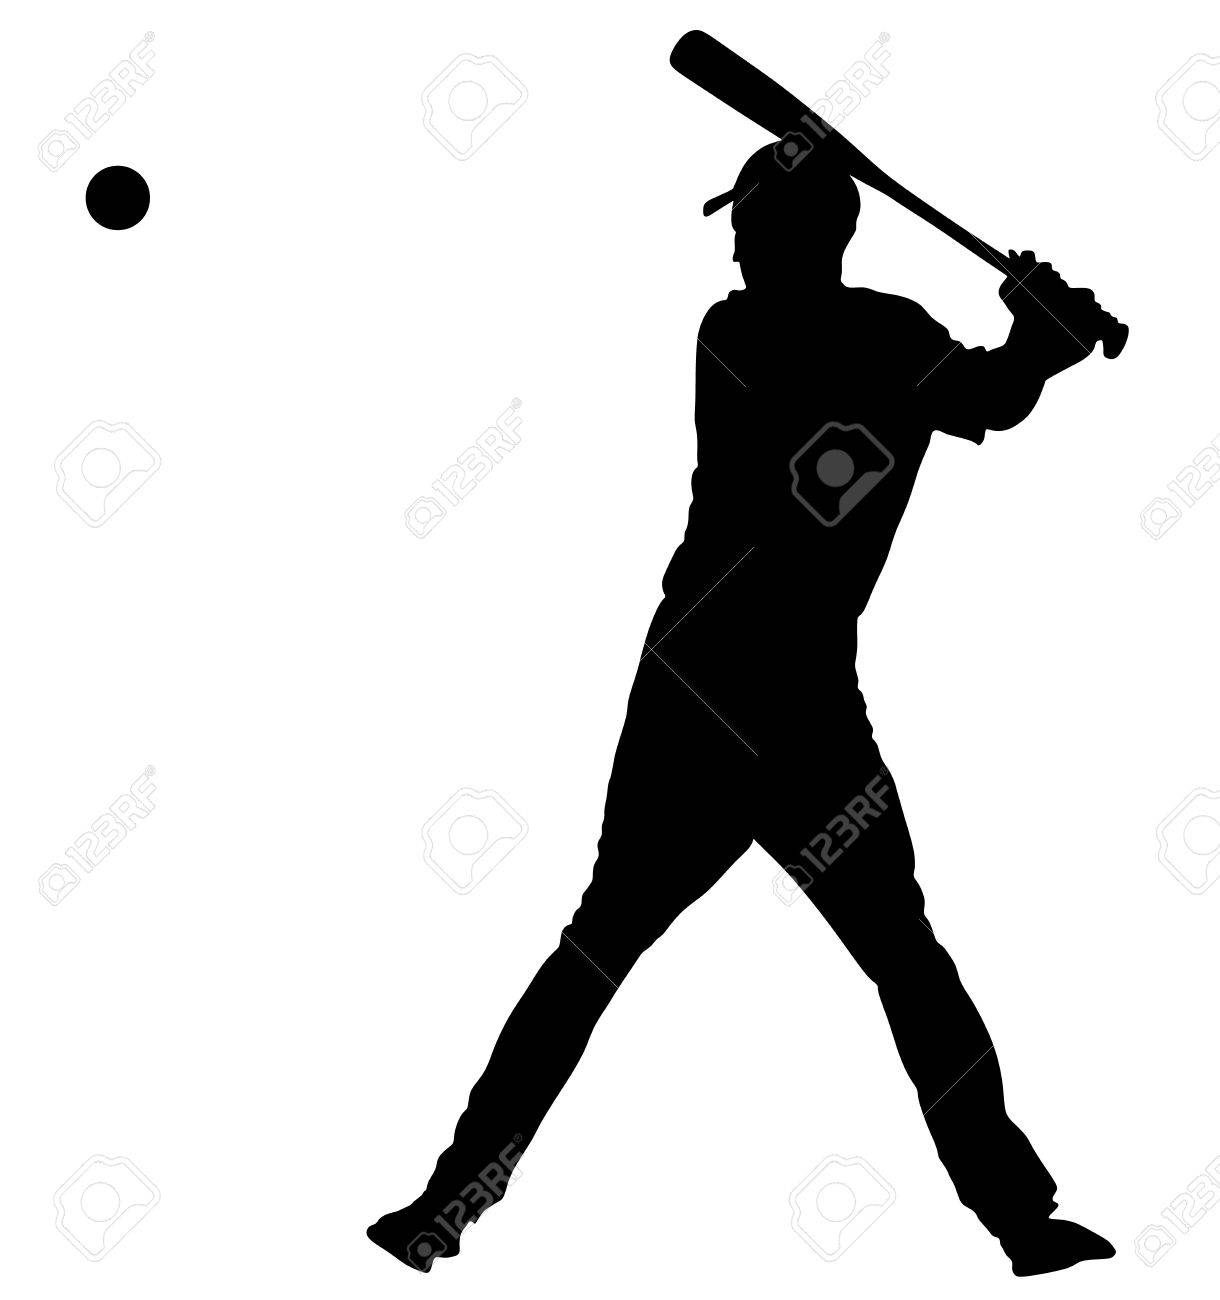 baseball player vector silhouette baseball batter hitting ball rh 123rf com Baseball Player Batter Clip Art Baseball Cap Vector